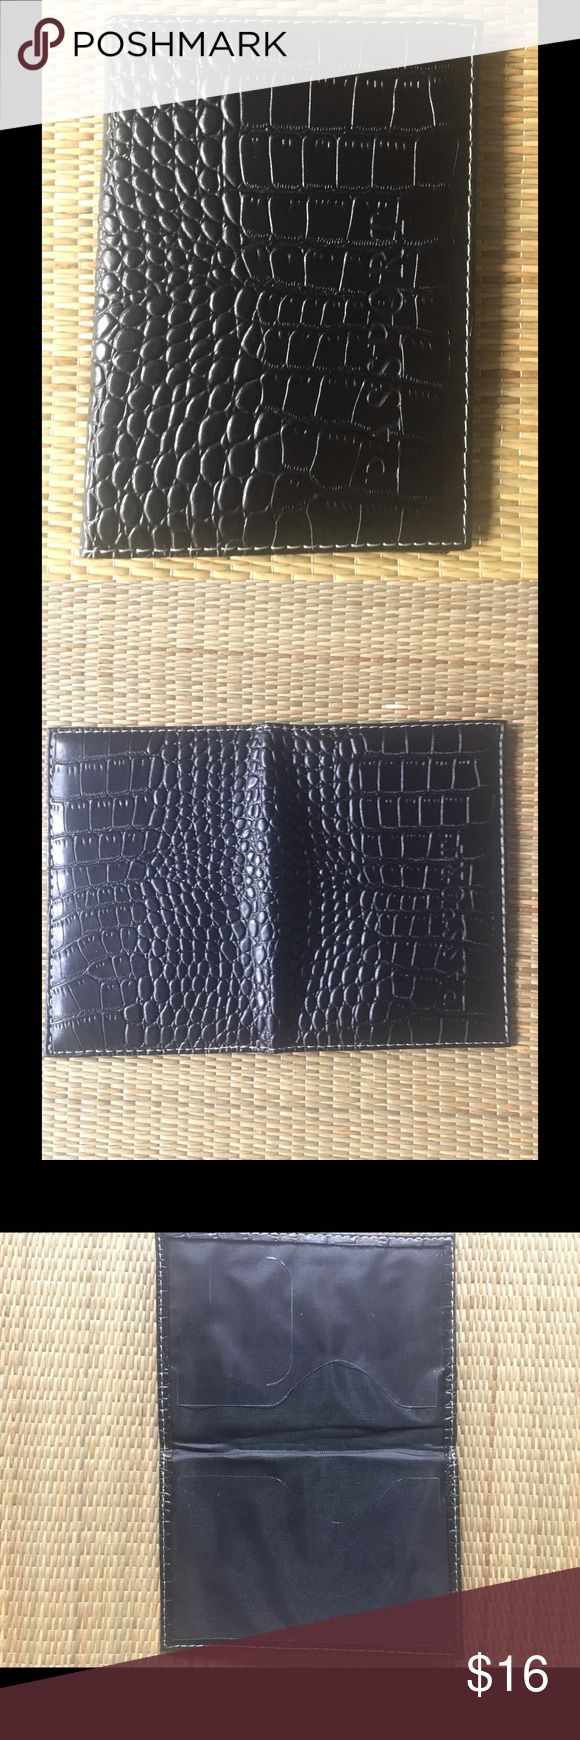 BLACK PASSPORT CARRIER  black passport carrier. Faux crocodile leather passport holder. Easy to clean & access passport, contains pockets inside for ID & passport. Imported faux leather. Reasonable offers/bundles welcome, no trades or holds. M environment is clean/organized/pet/smoke free. Please feel free to make any inquires, all sales are final on PM. Thank you for shopping my boutique. #poshstyle DARLING Accessories